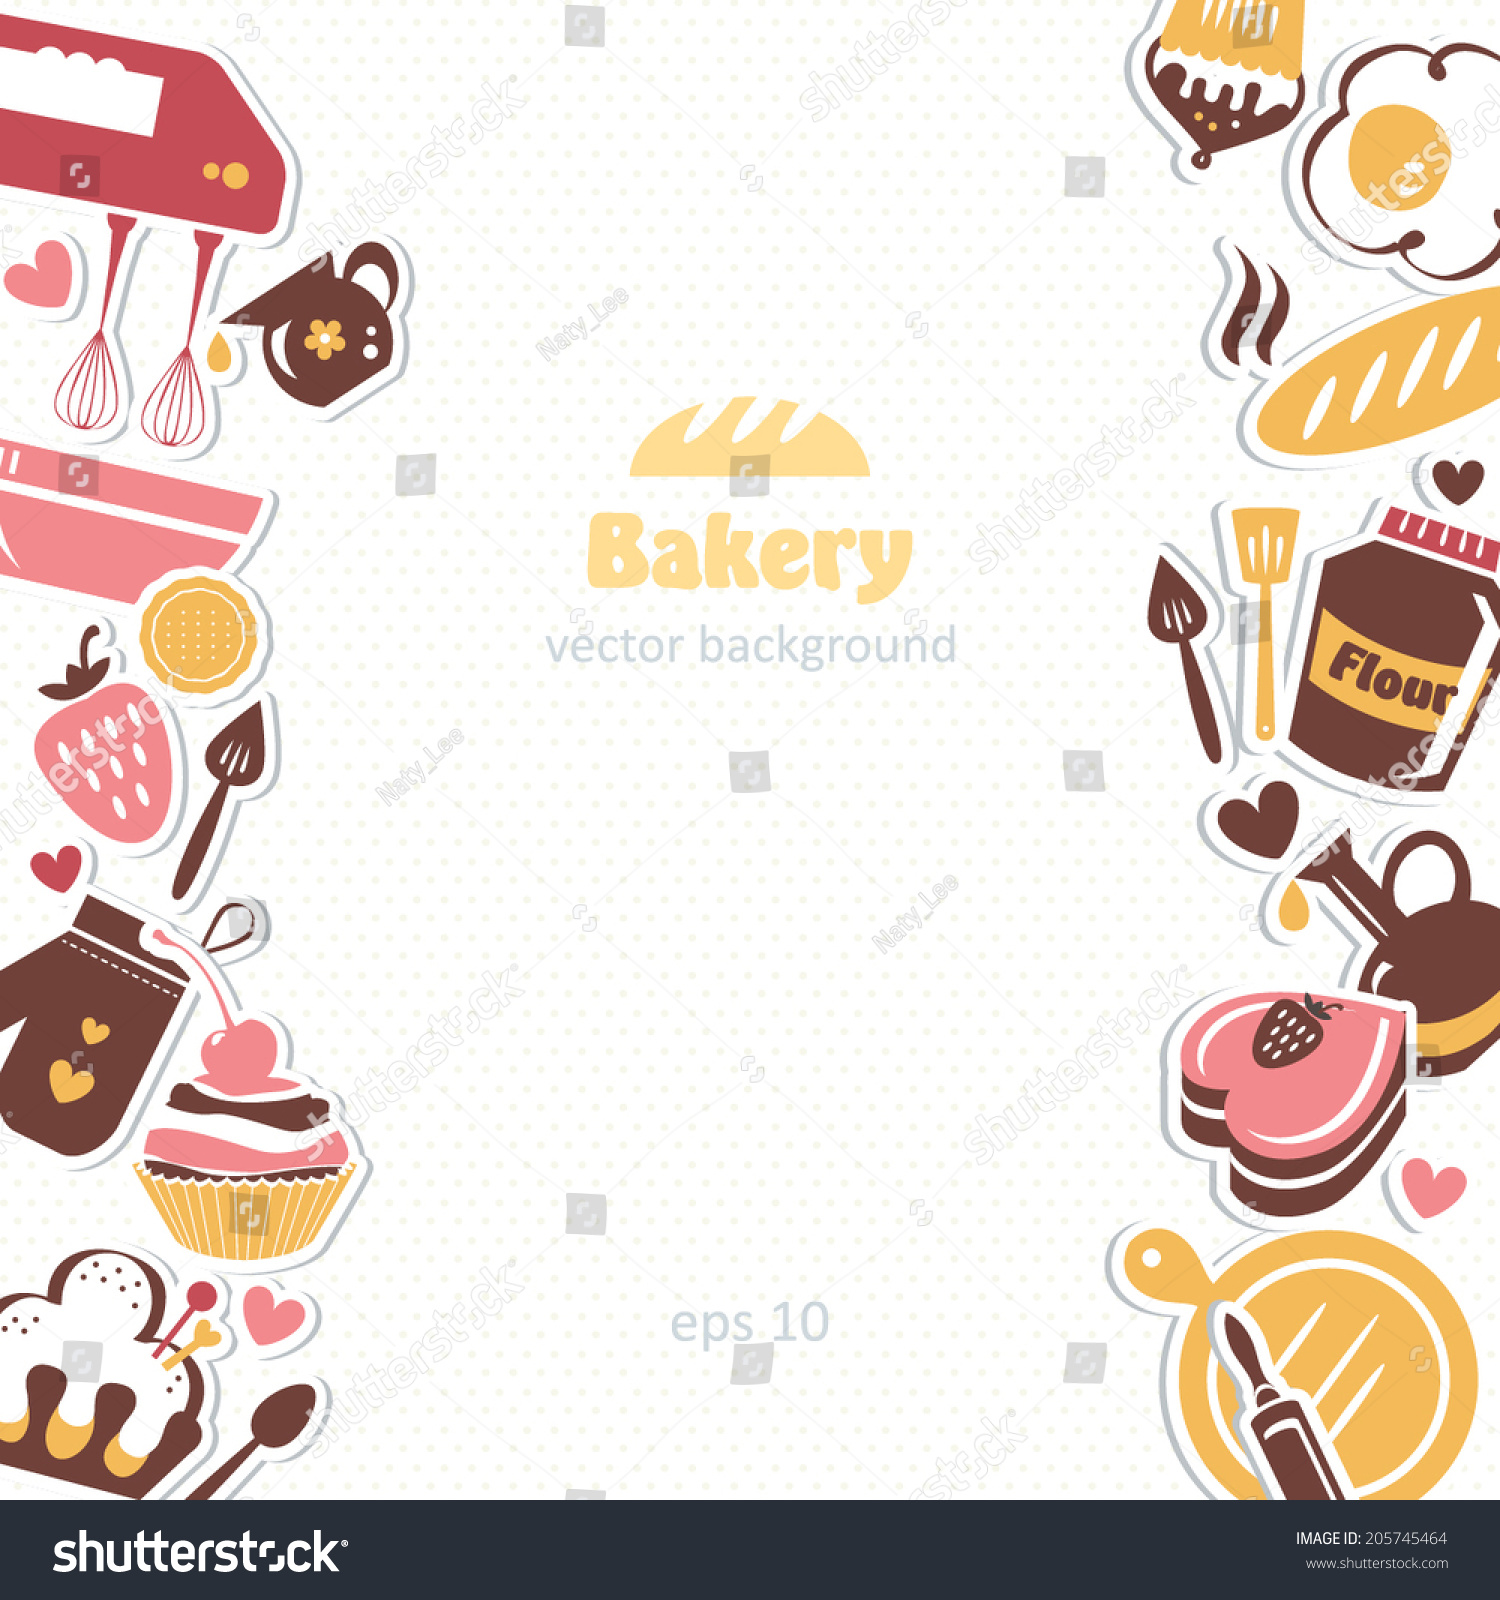 bakery background stock vector 205745464 shutterstock cupcake clipart free black and white cupcake clip art free cartoon